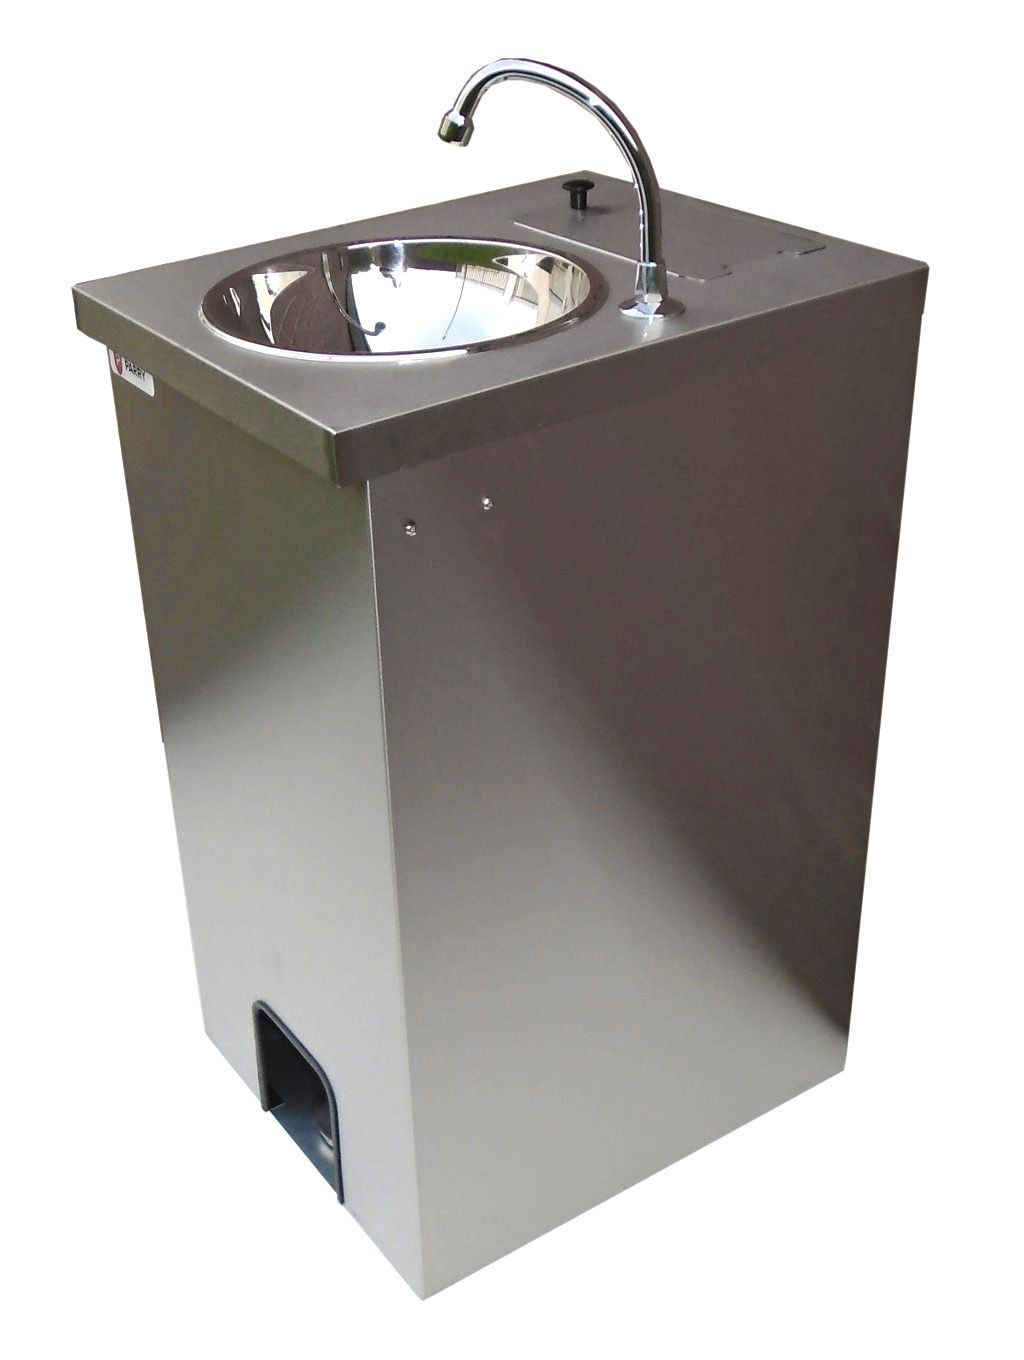 Electric Portable Sink Hot Hand Wash St Steel Cupboard 25 Lts Foot